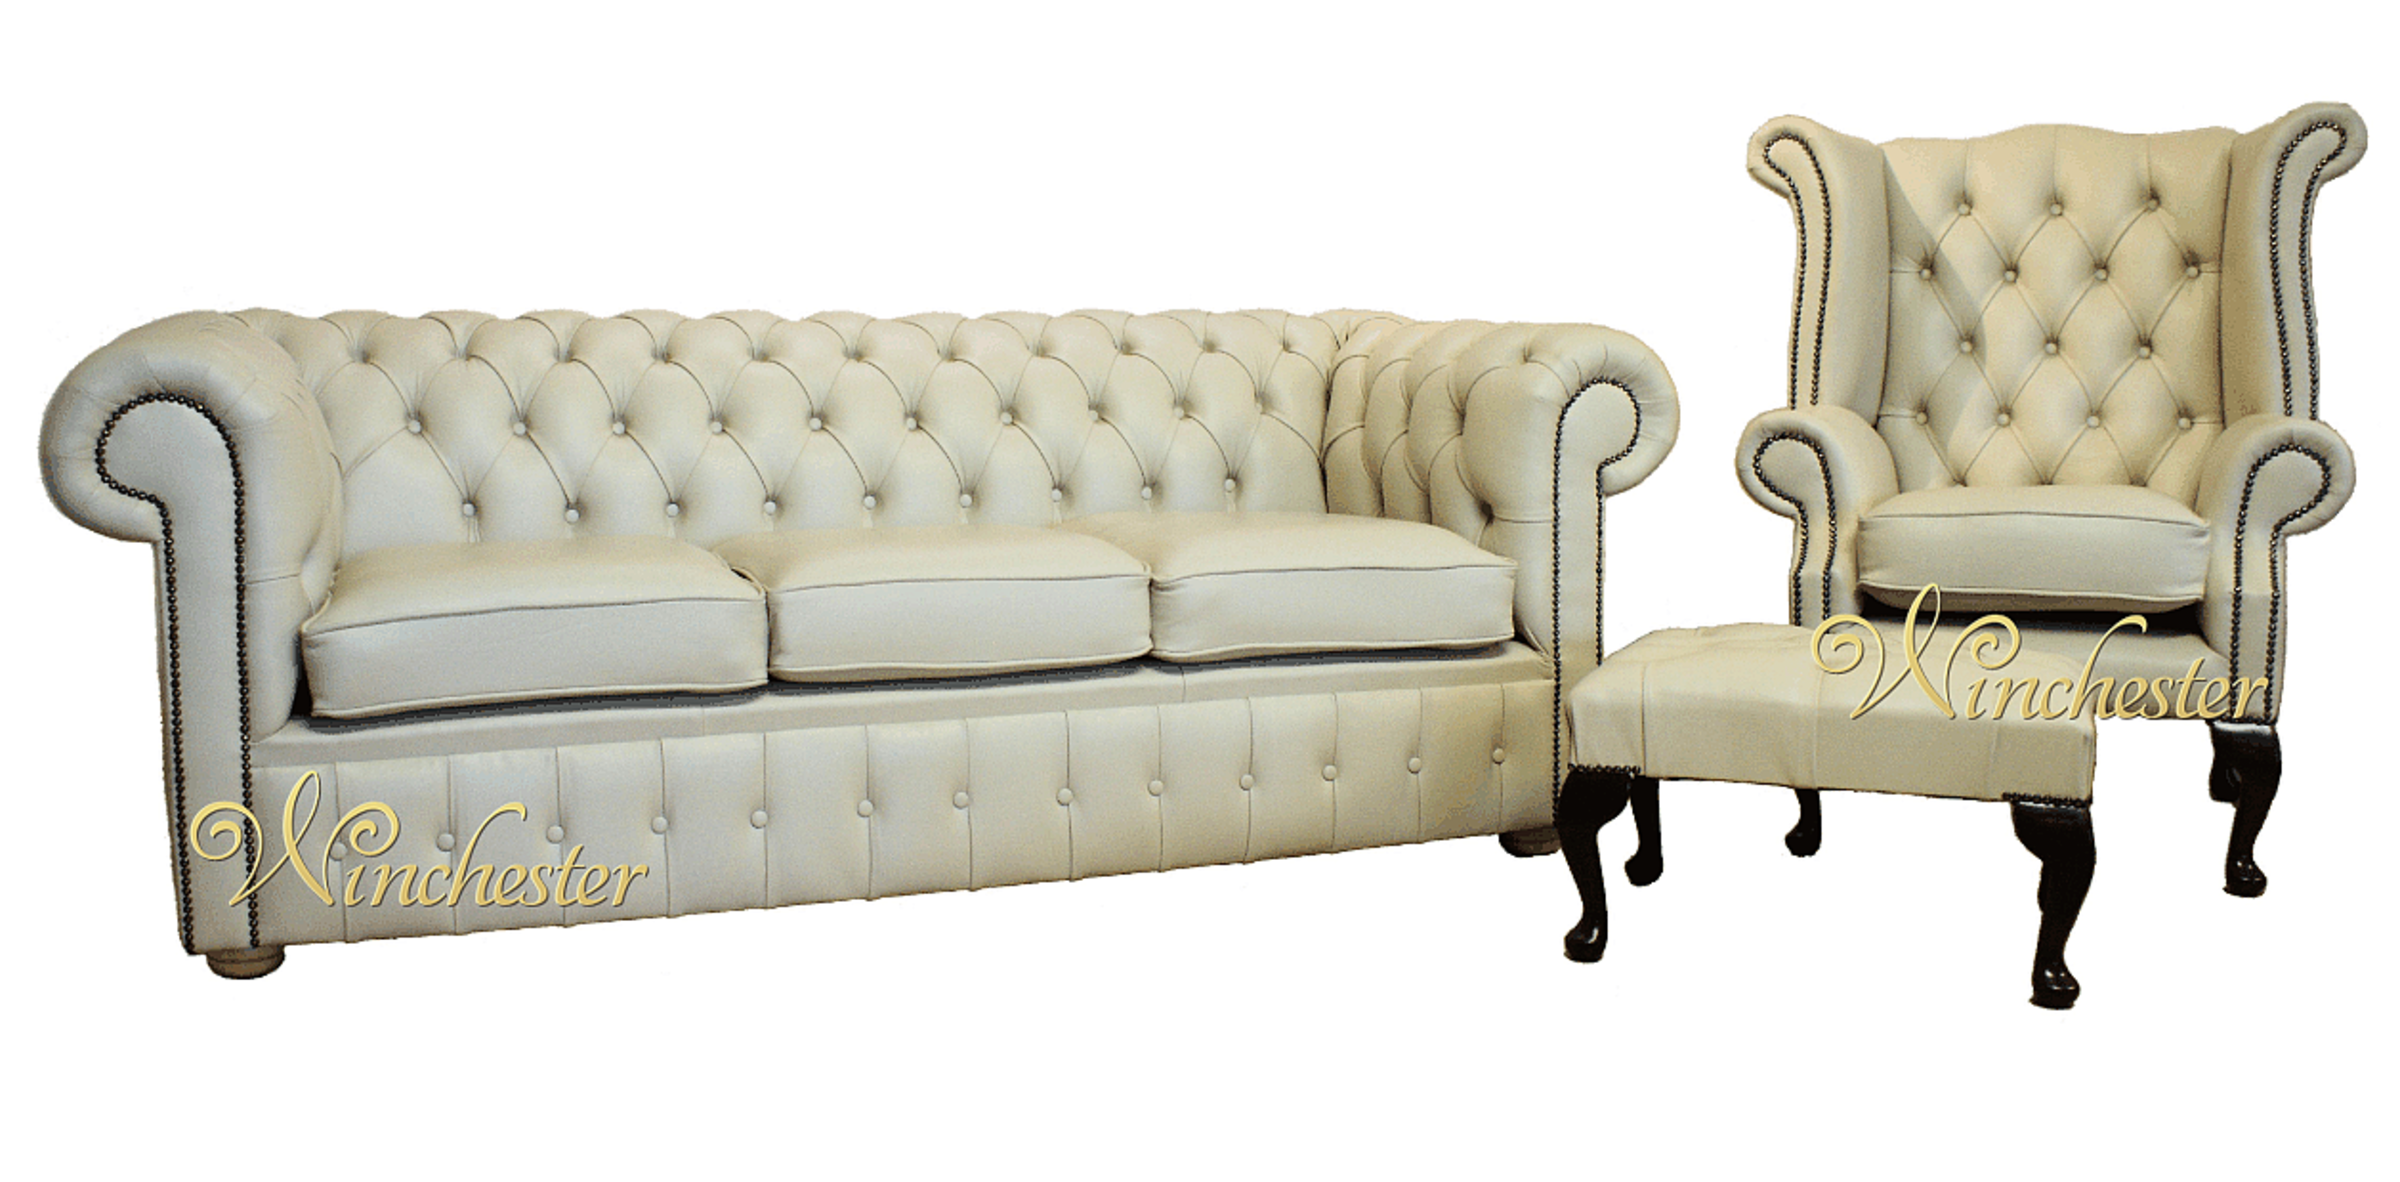 Chesterfield Cream Leather Sofa Offer 3+1+ Footstool, Leather Sofas,  Traditional Sofas